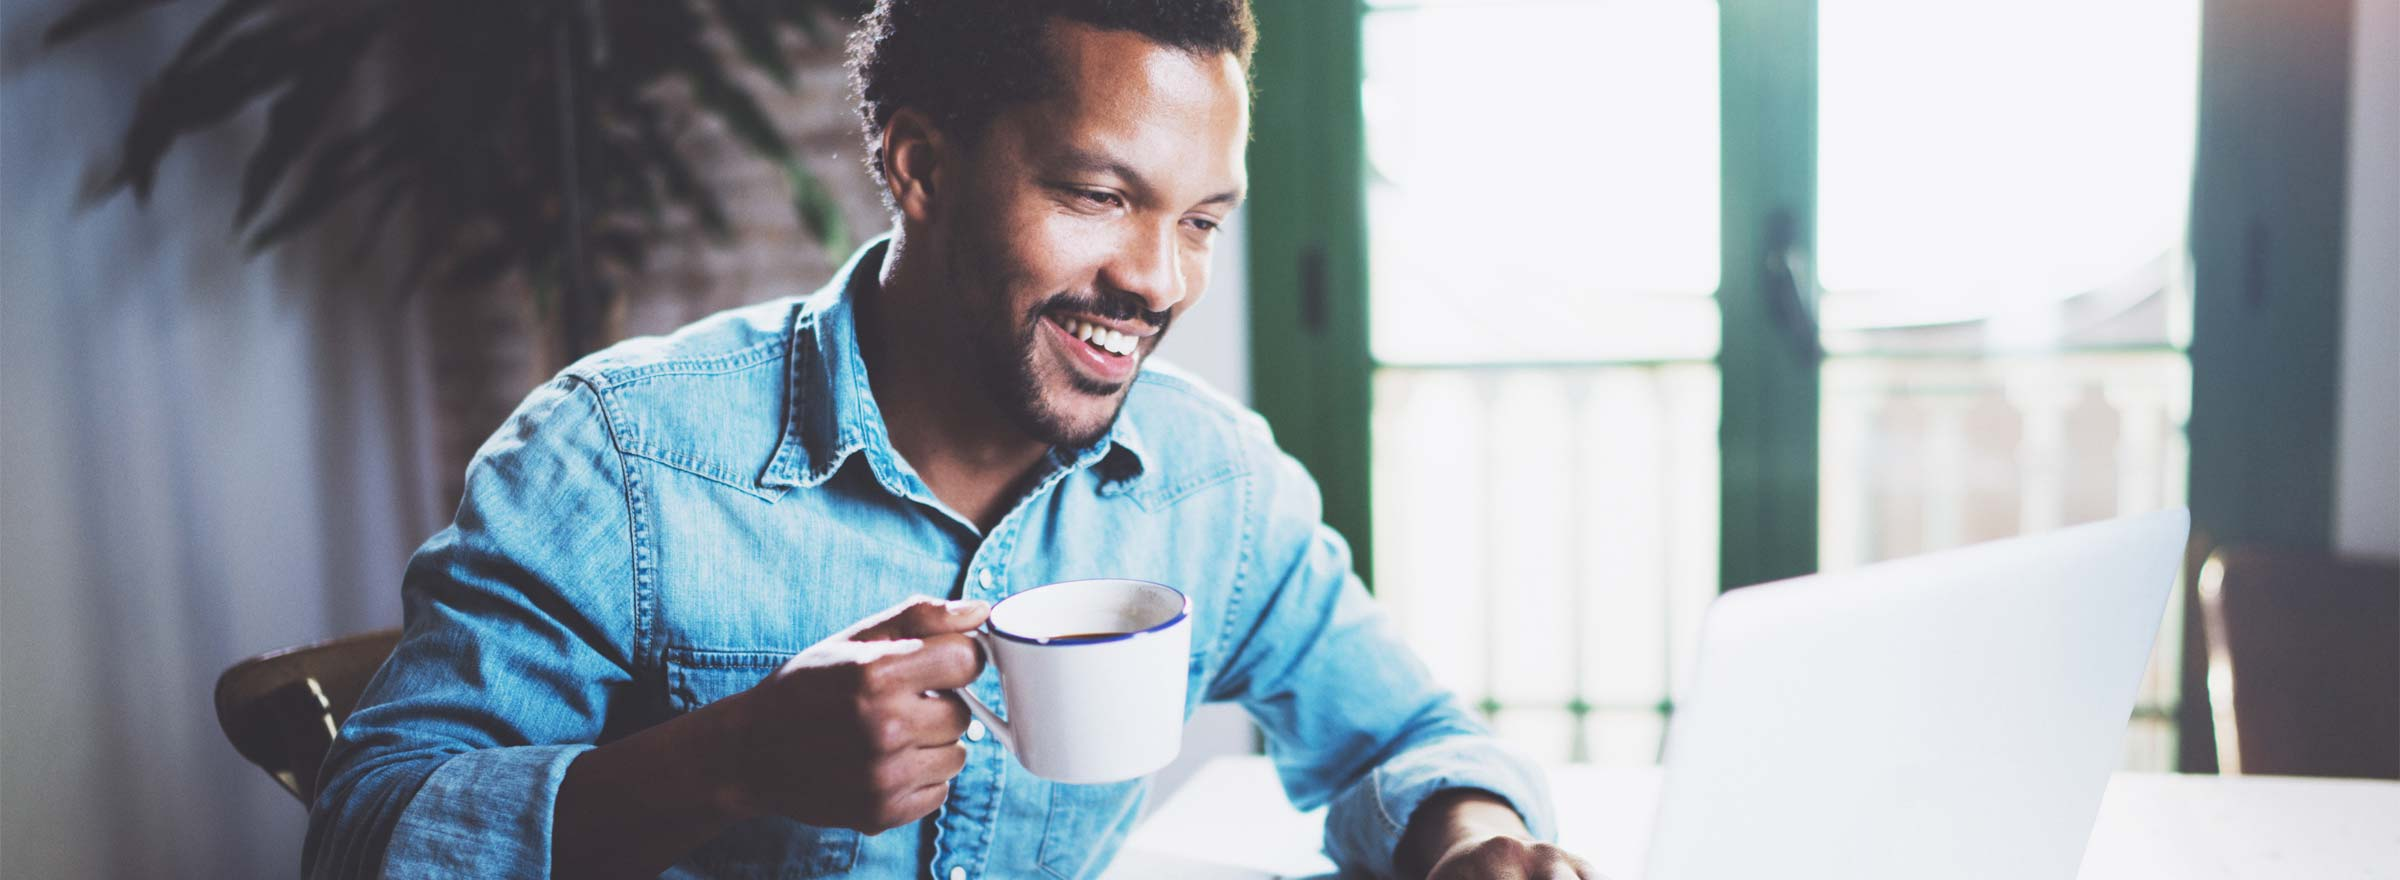 man drinking coffee and smiling at a computer